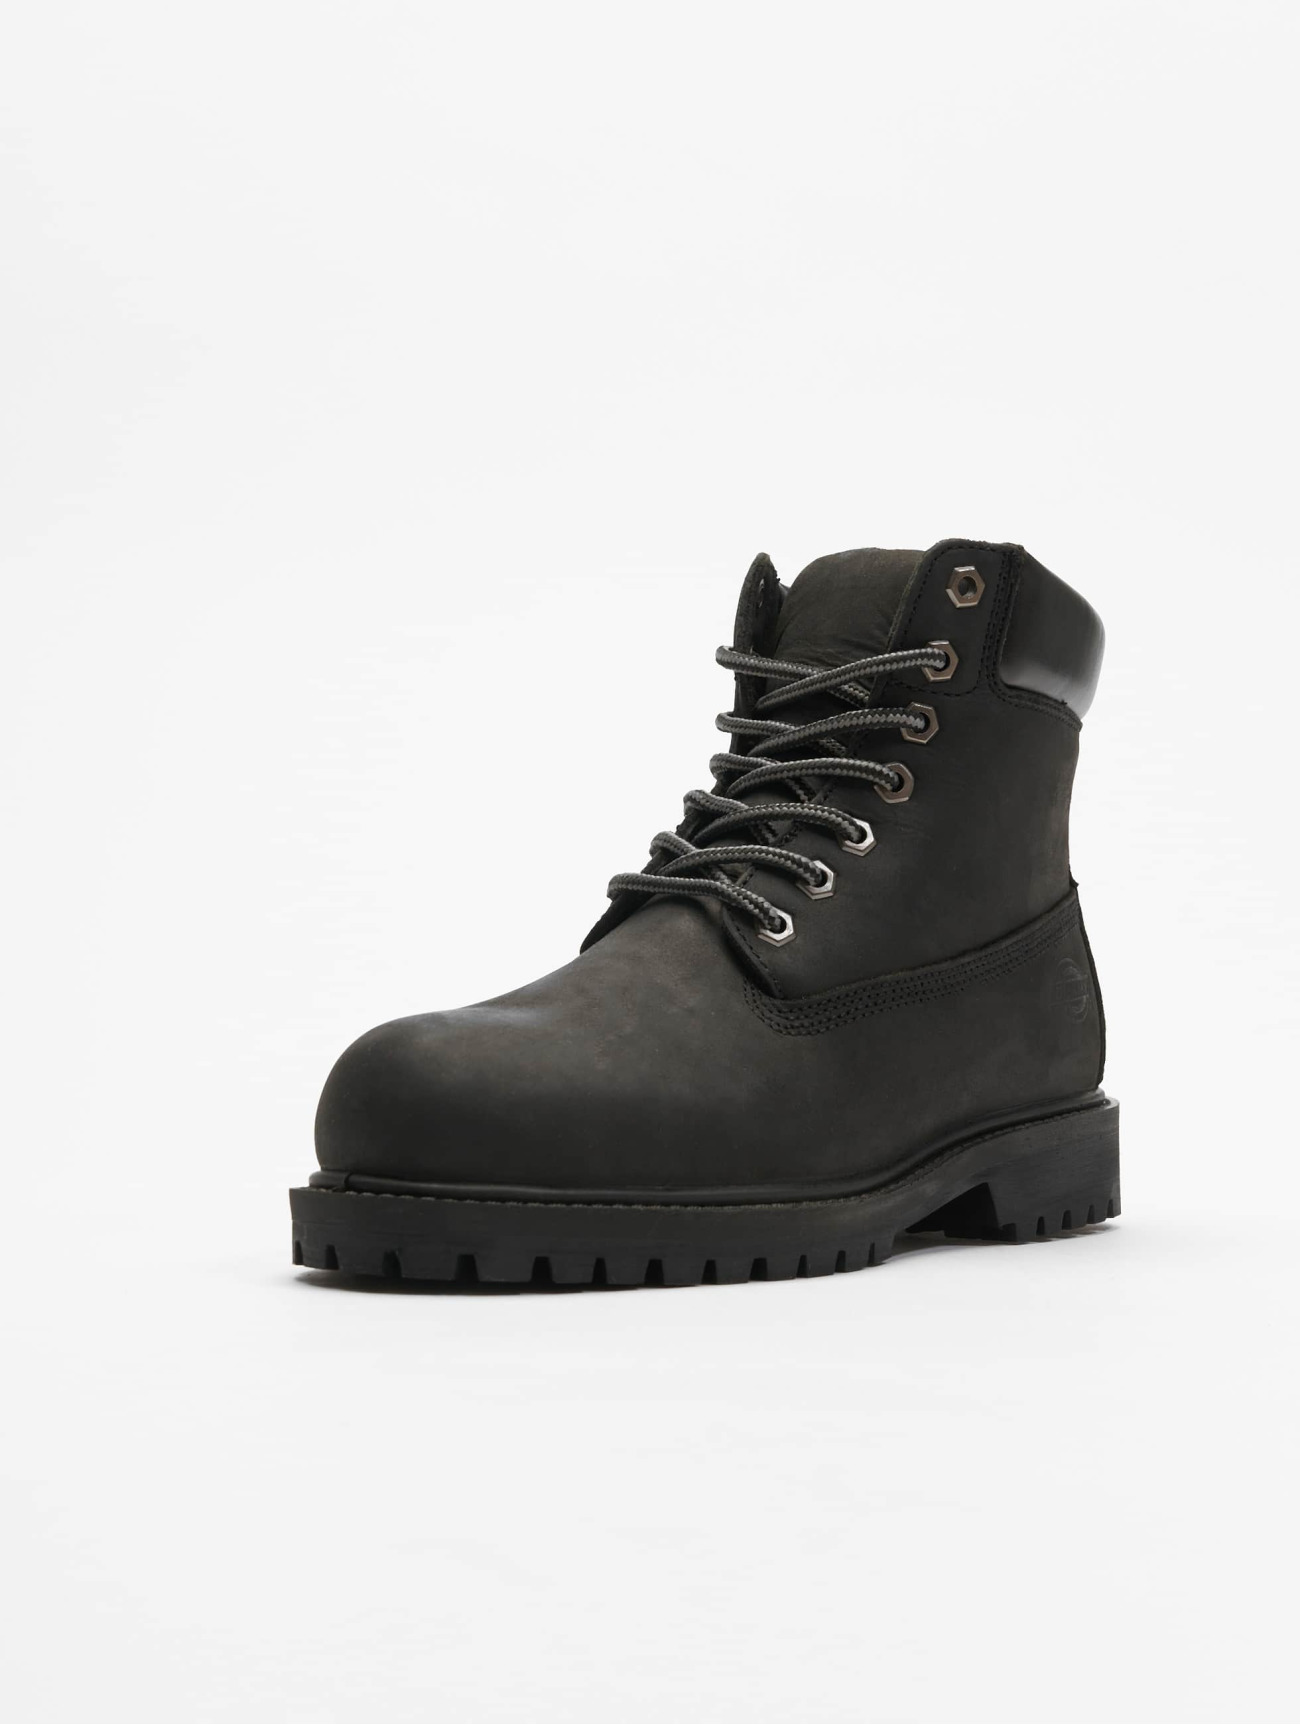 Dickies  South Dakota  noir Homme Chaussures montantes  192195 Homme Chaussures